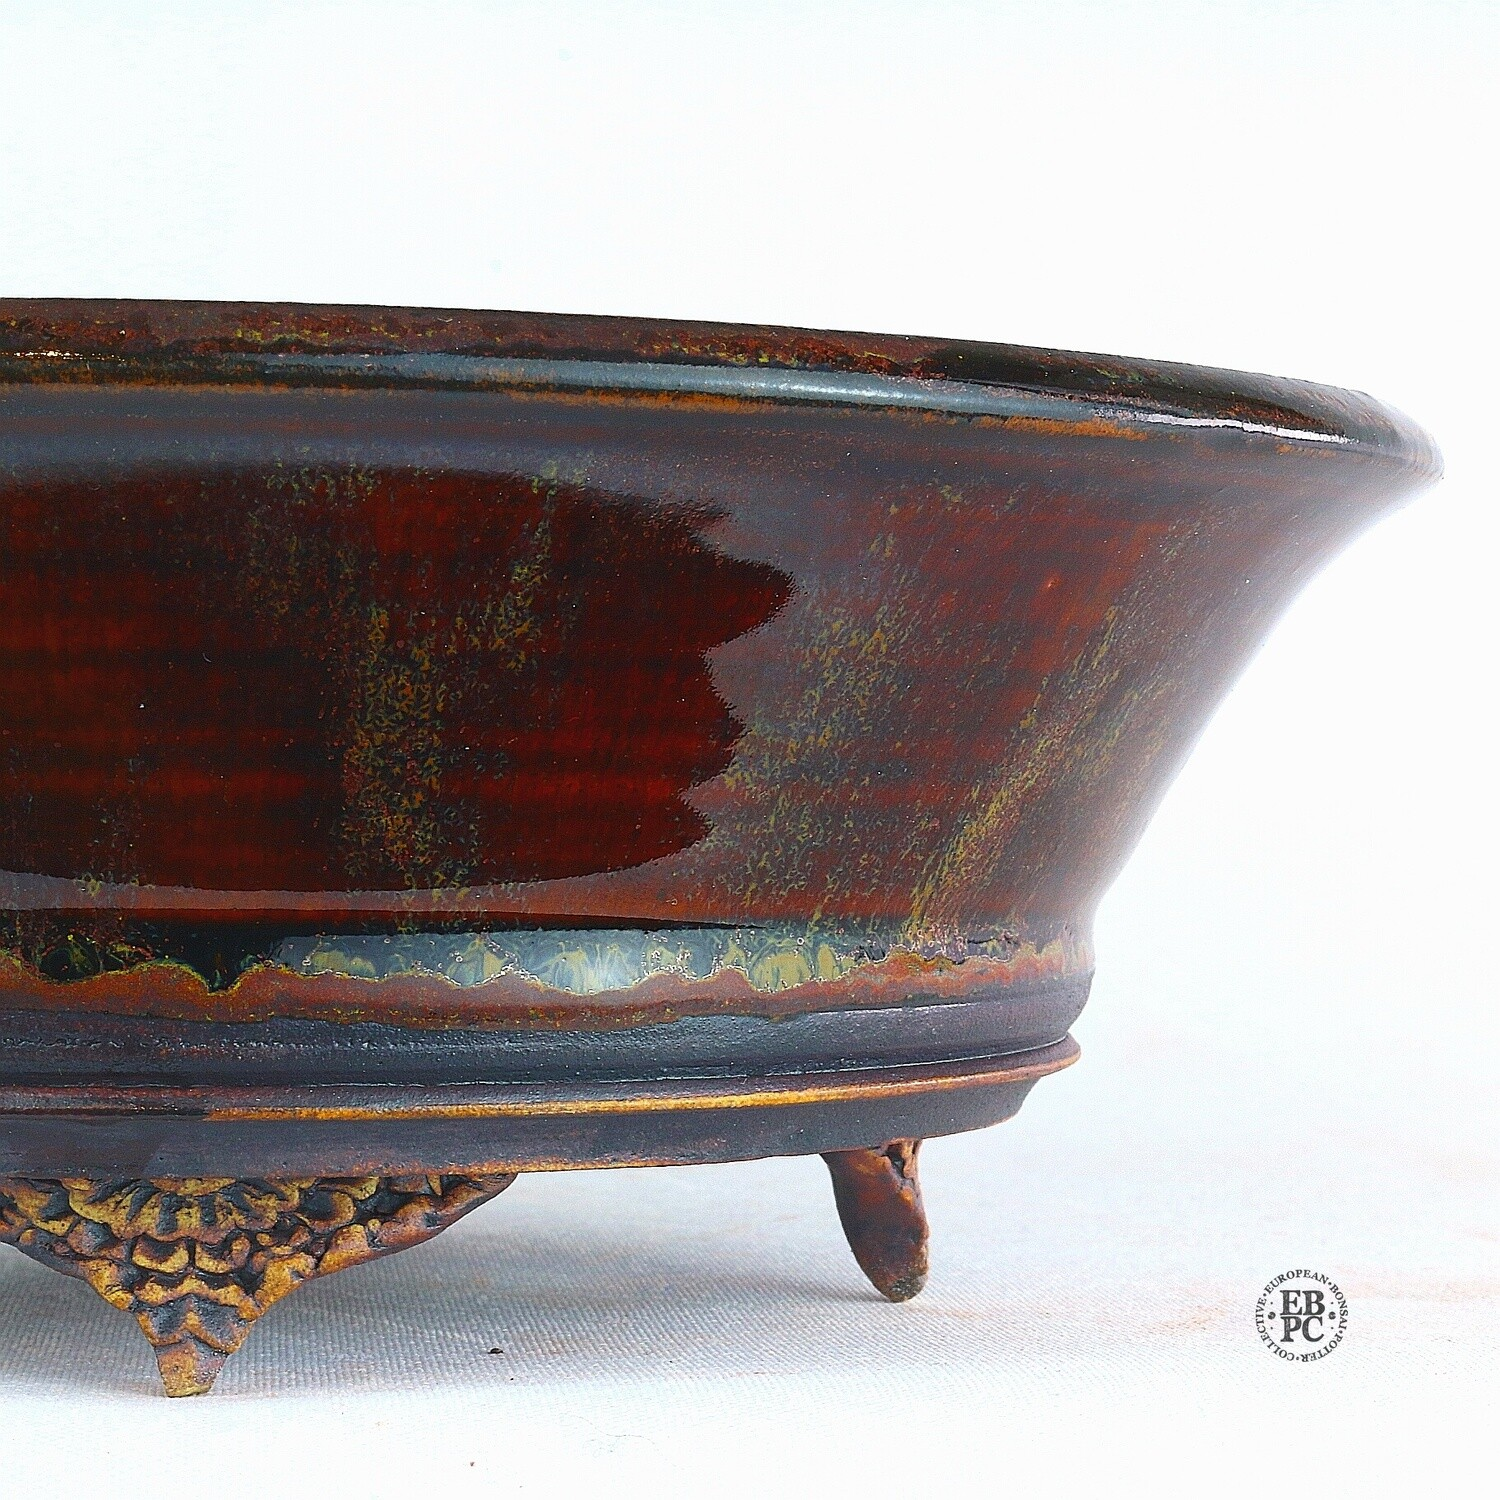 Kingdom Bonsai Pots - Ireland.  18.4cm; Round; Delicate Carved Feet; Exquisite Glaze; Blood Red; Yellows and Greens; EBPC Stamped; Enda Coyne